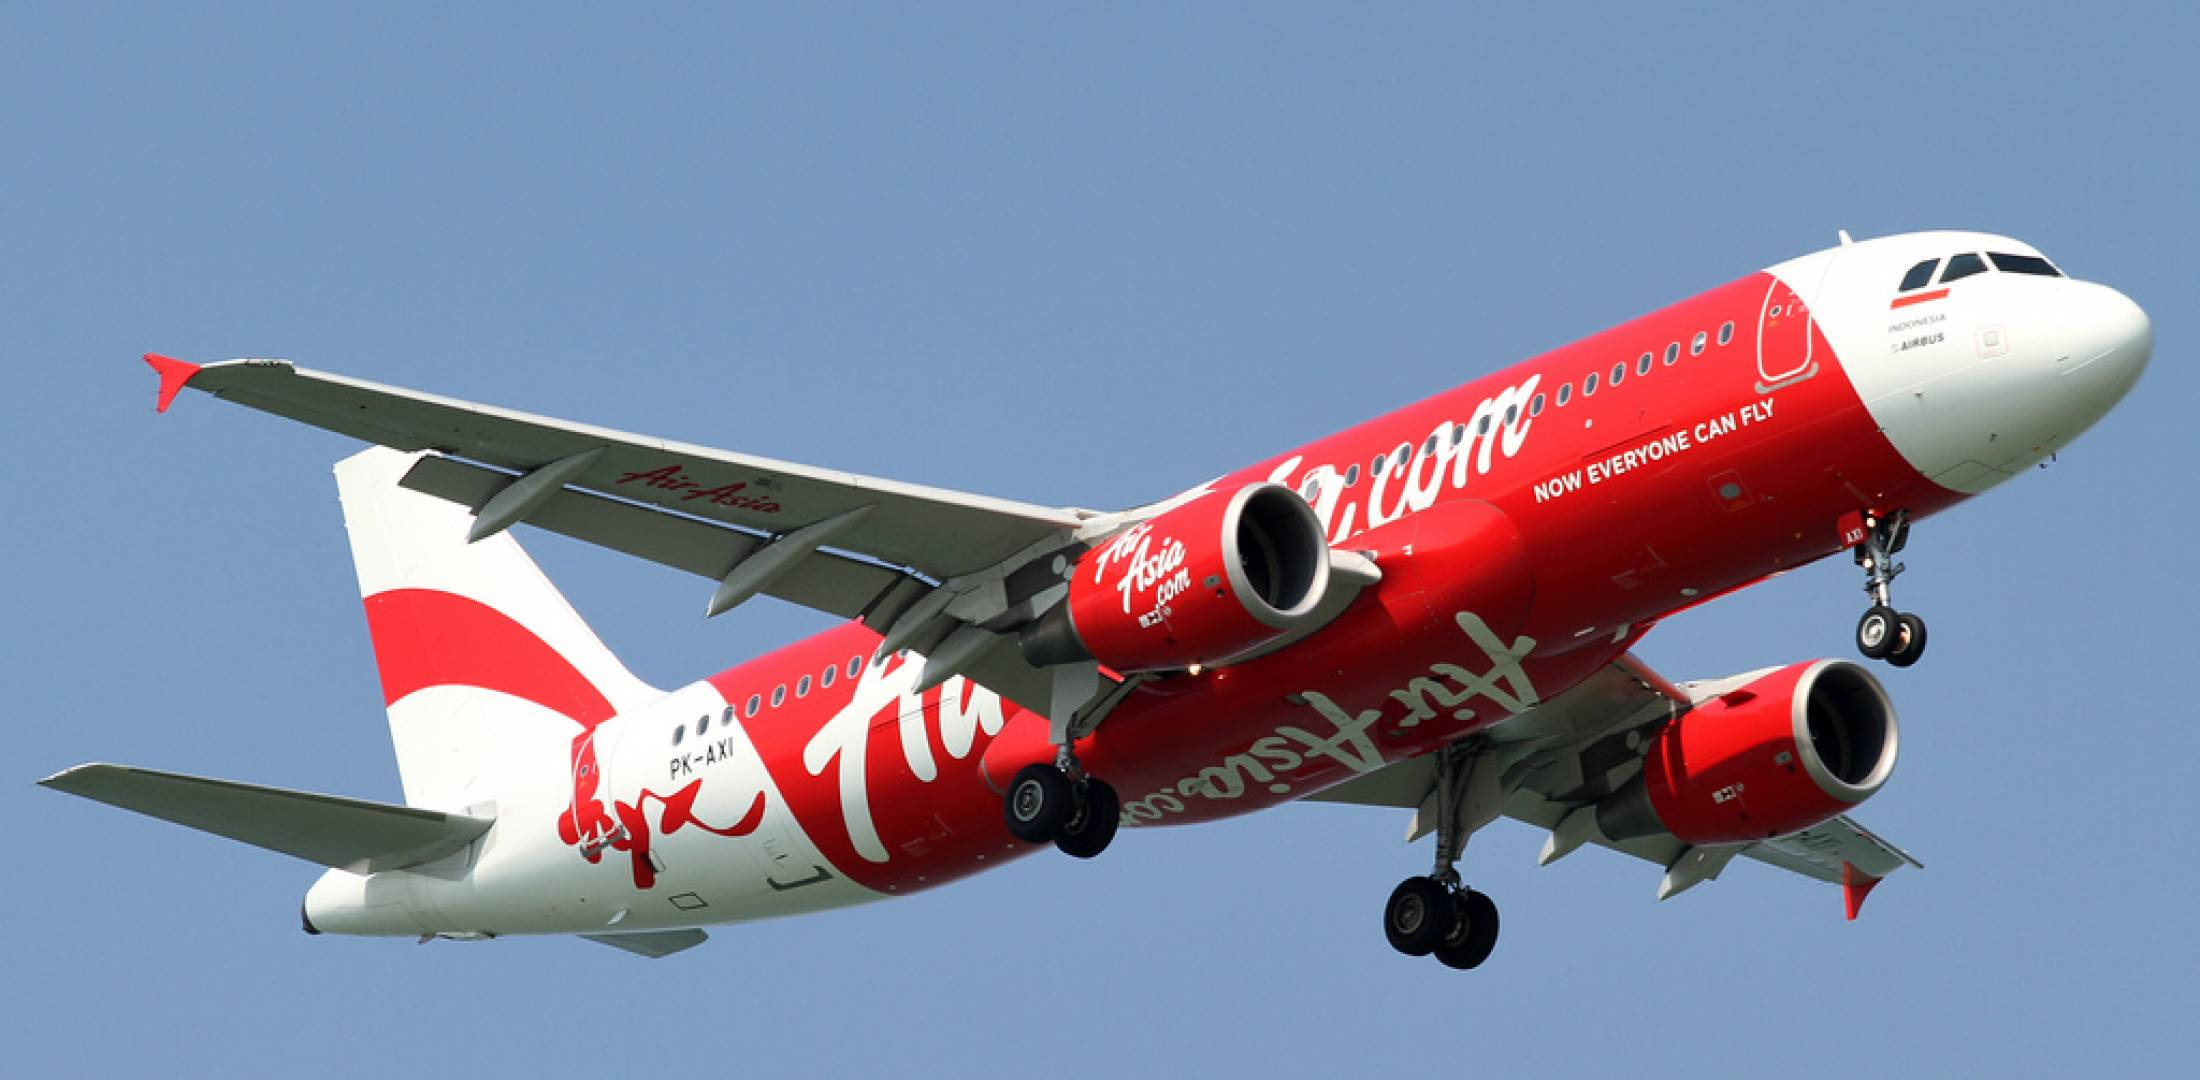 Air Asia aircraft in flight